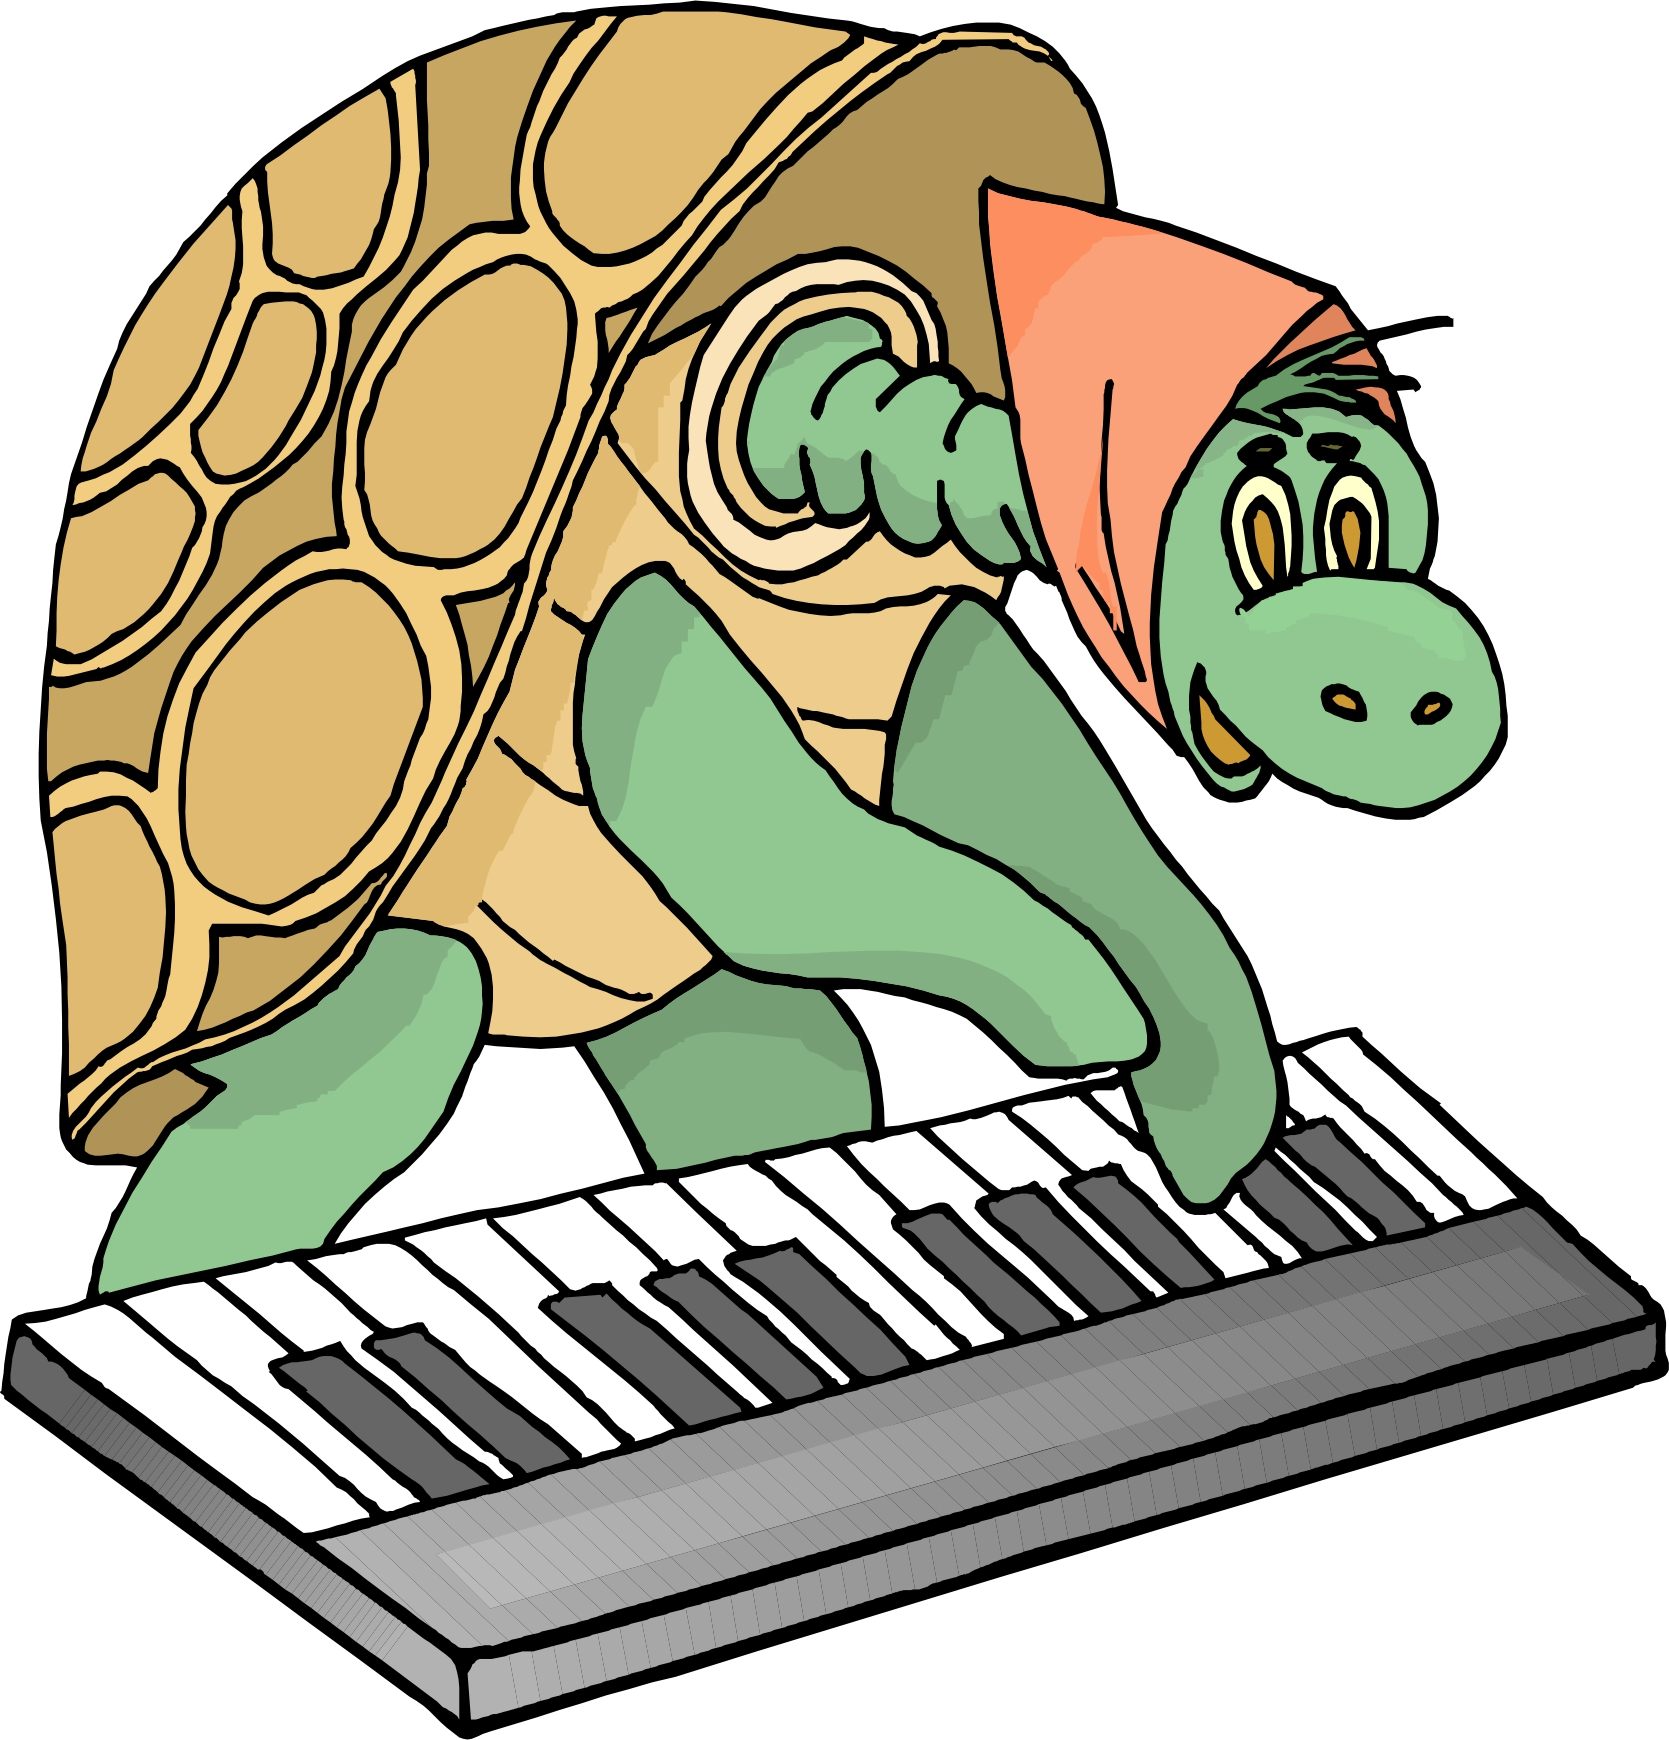 1669x1740 Cartoon Piano Pictures